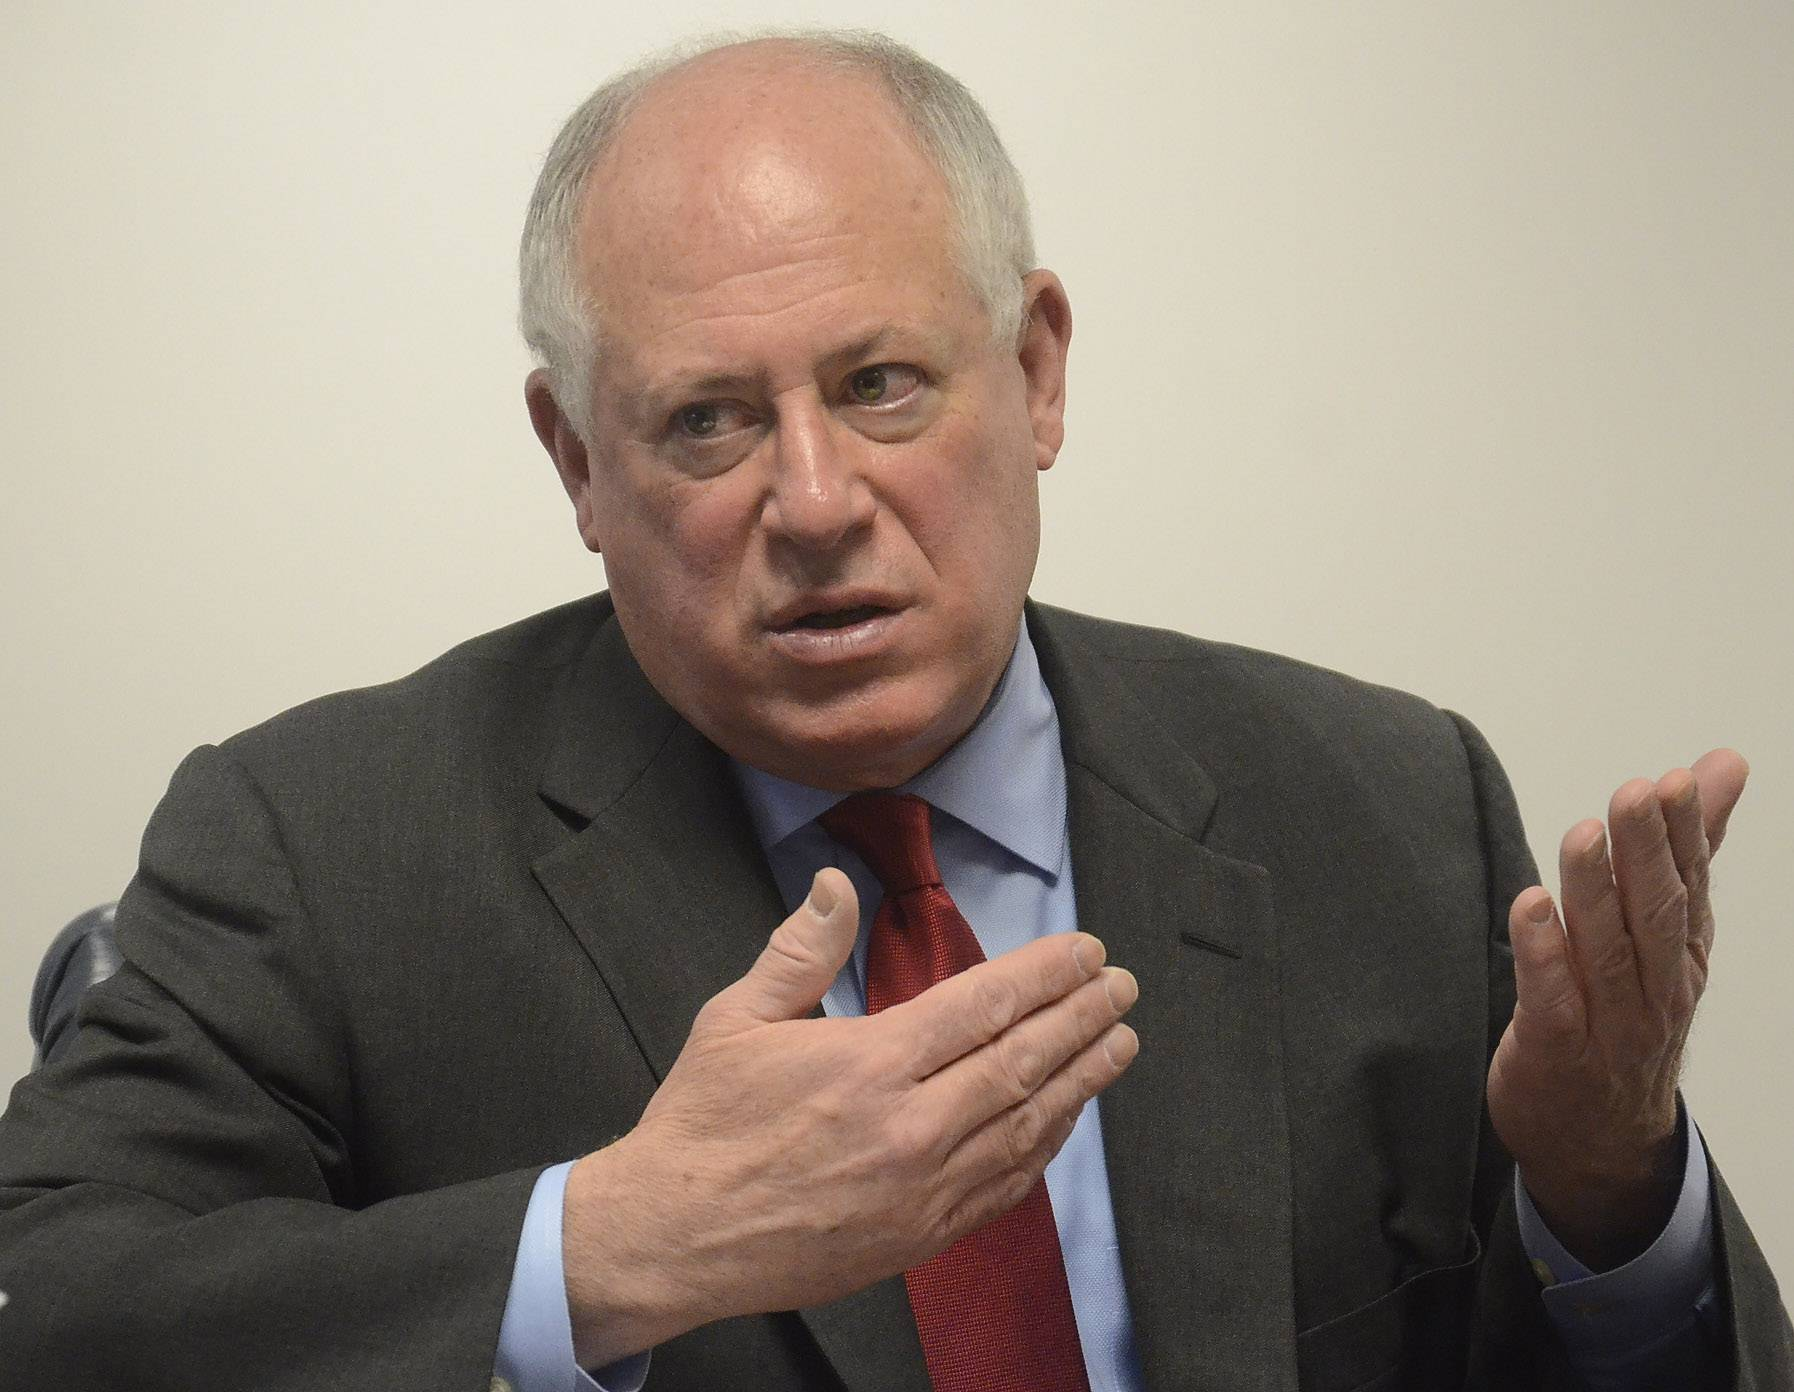 Gov. Pat Quinn speaks to the Daily Herald editorial board on Friday about his proposal to make permanent the 2011 income tax increase.